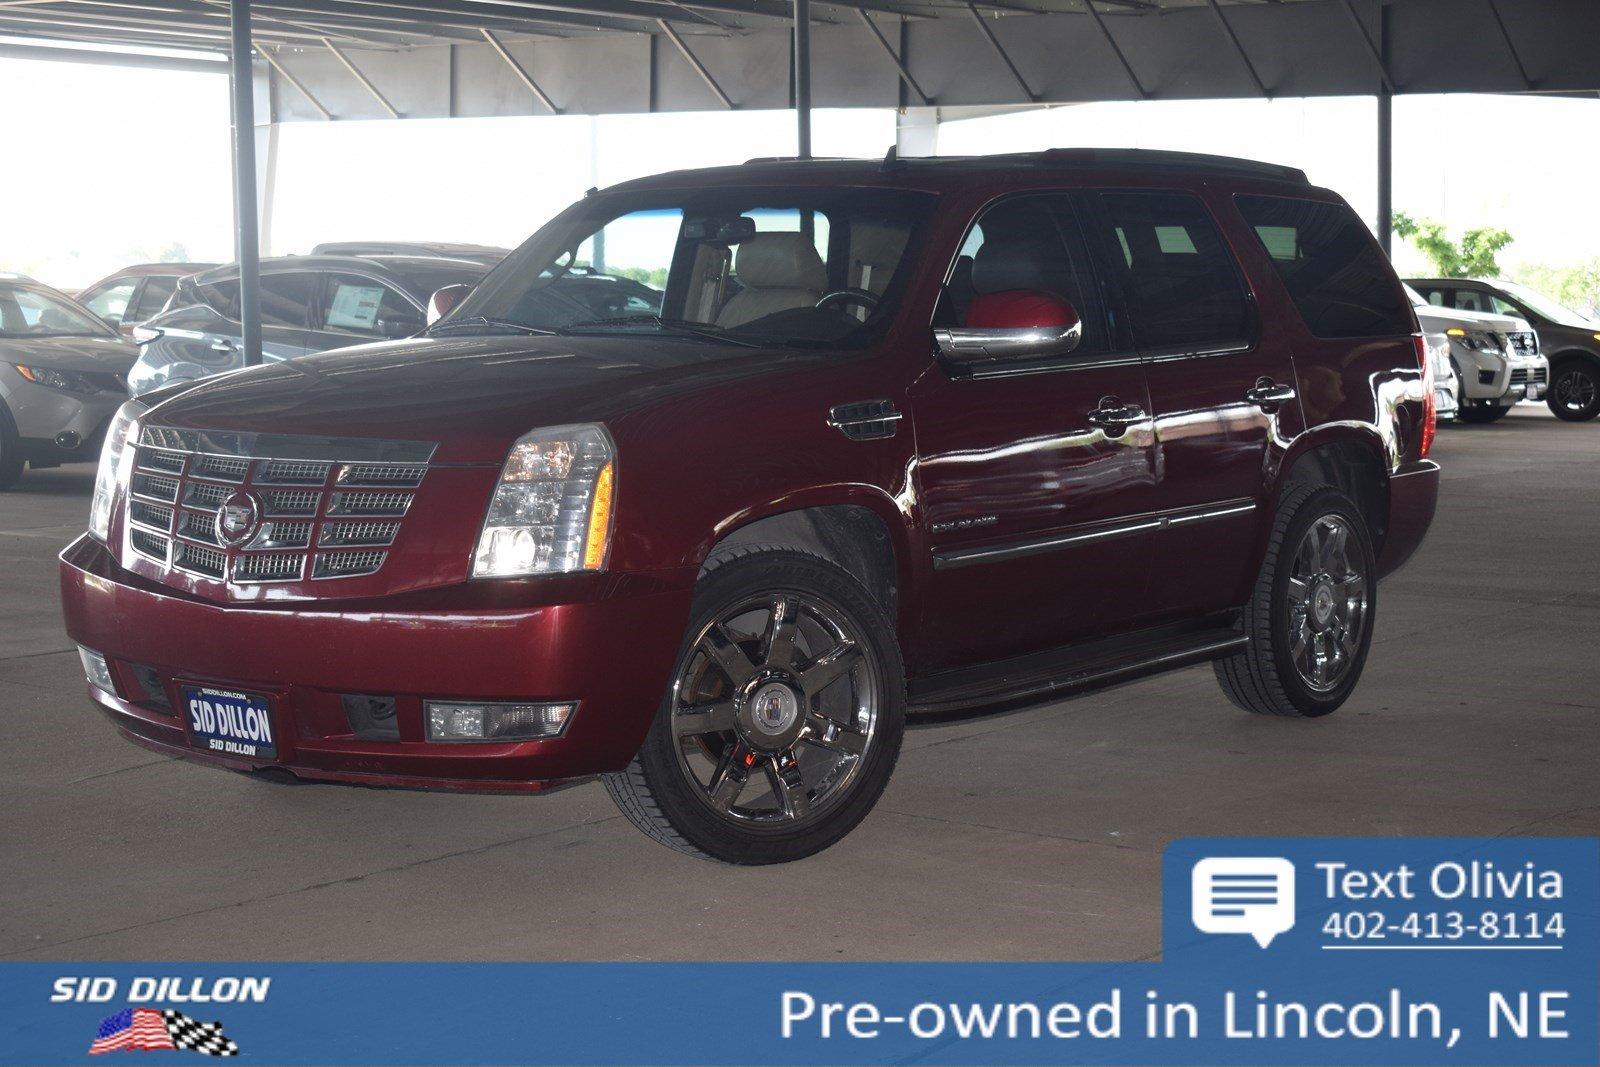 2010 Cadillac Escalade Trailer Wiring Electrical Diagrams 2004 Pre Owned Luxury Suv In Lincoln 4n18488a Front Light Off